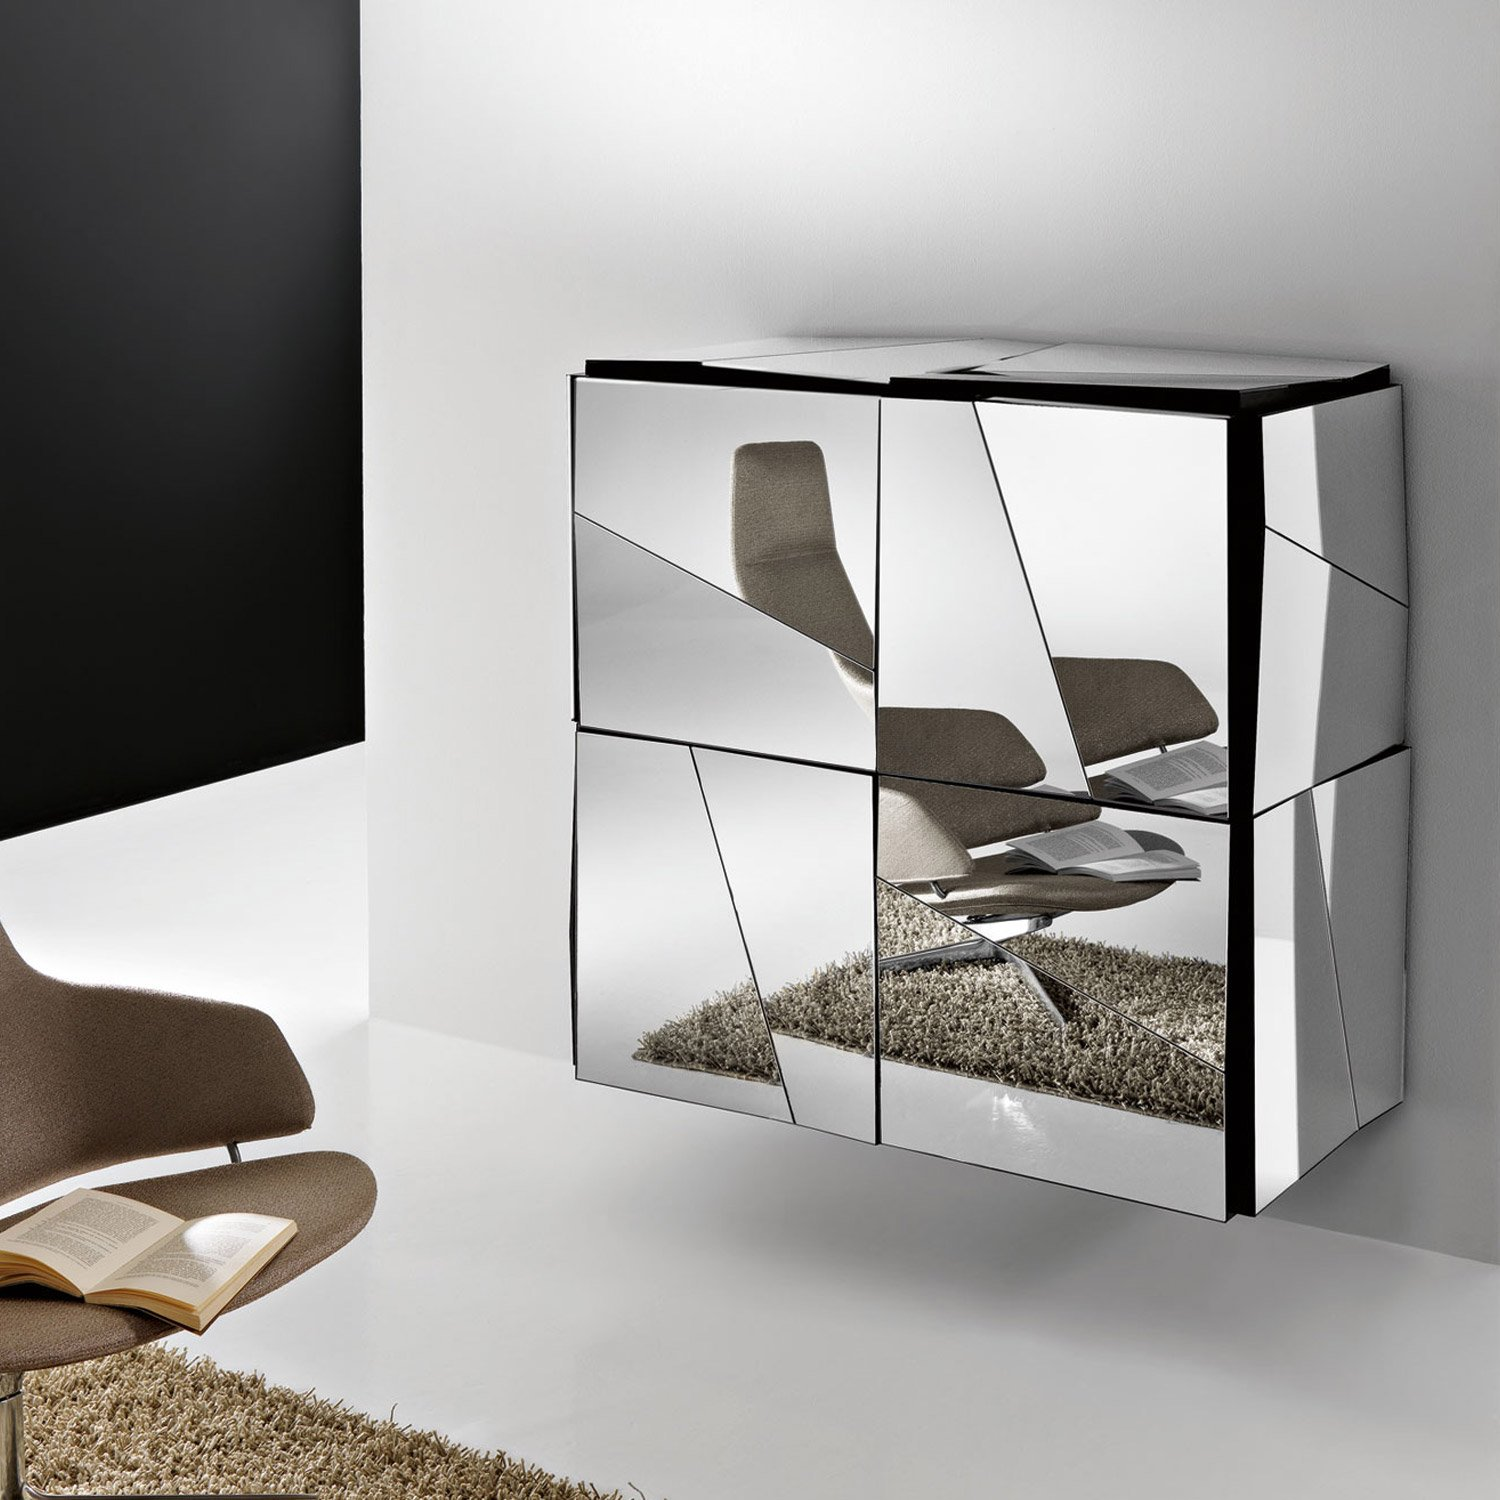 Psiche mirrored cabinet by tonelli klarity glass furniture Mirror glass furniture